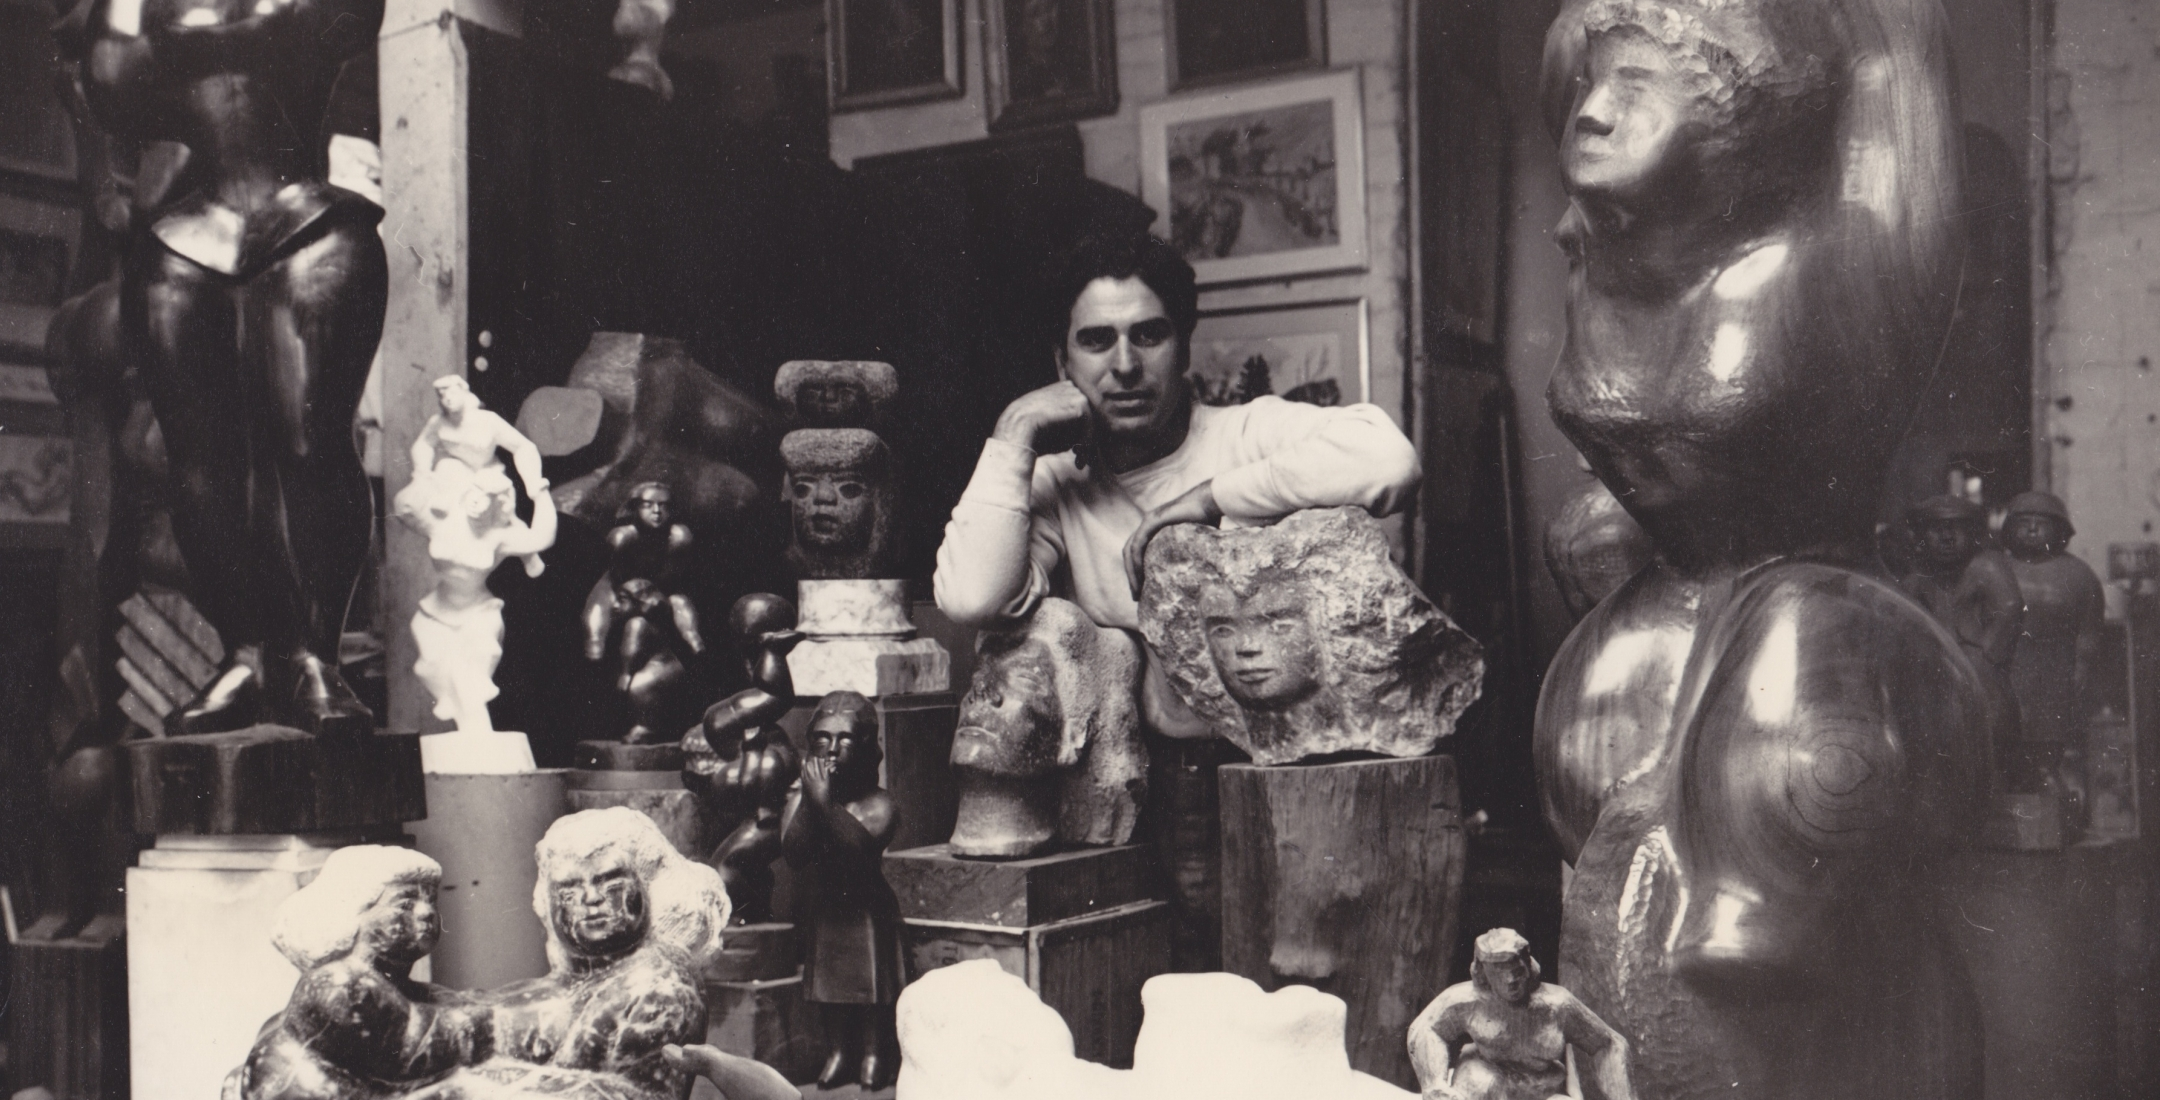 Black and white photo of a young Chaim Gross looking at the camera while surrounded by sculptures of various sizes and mediums.